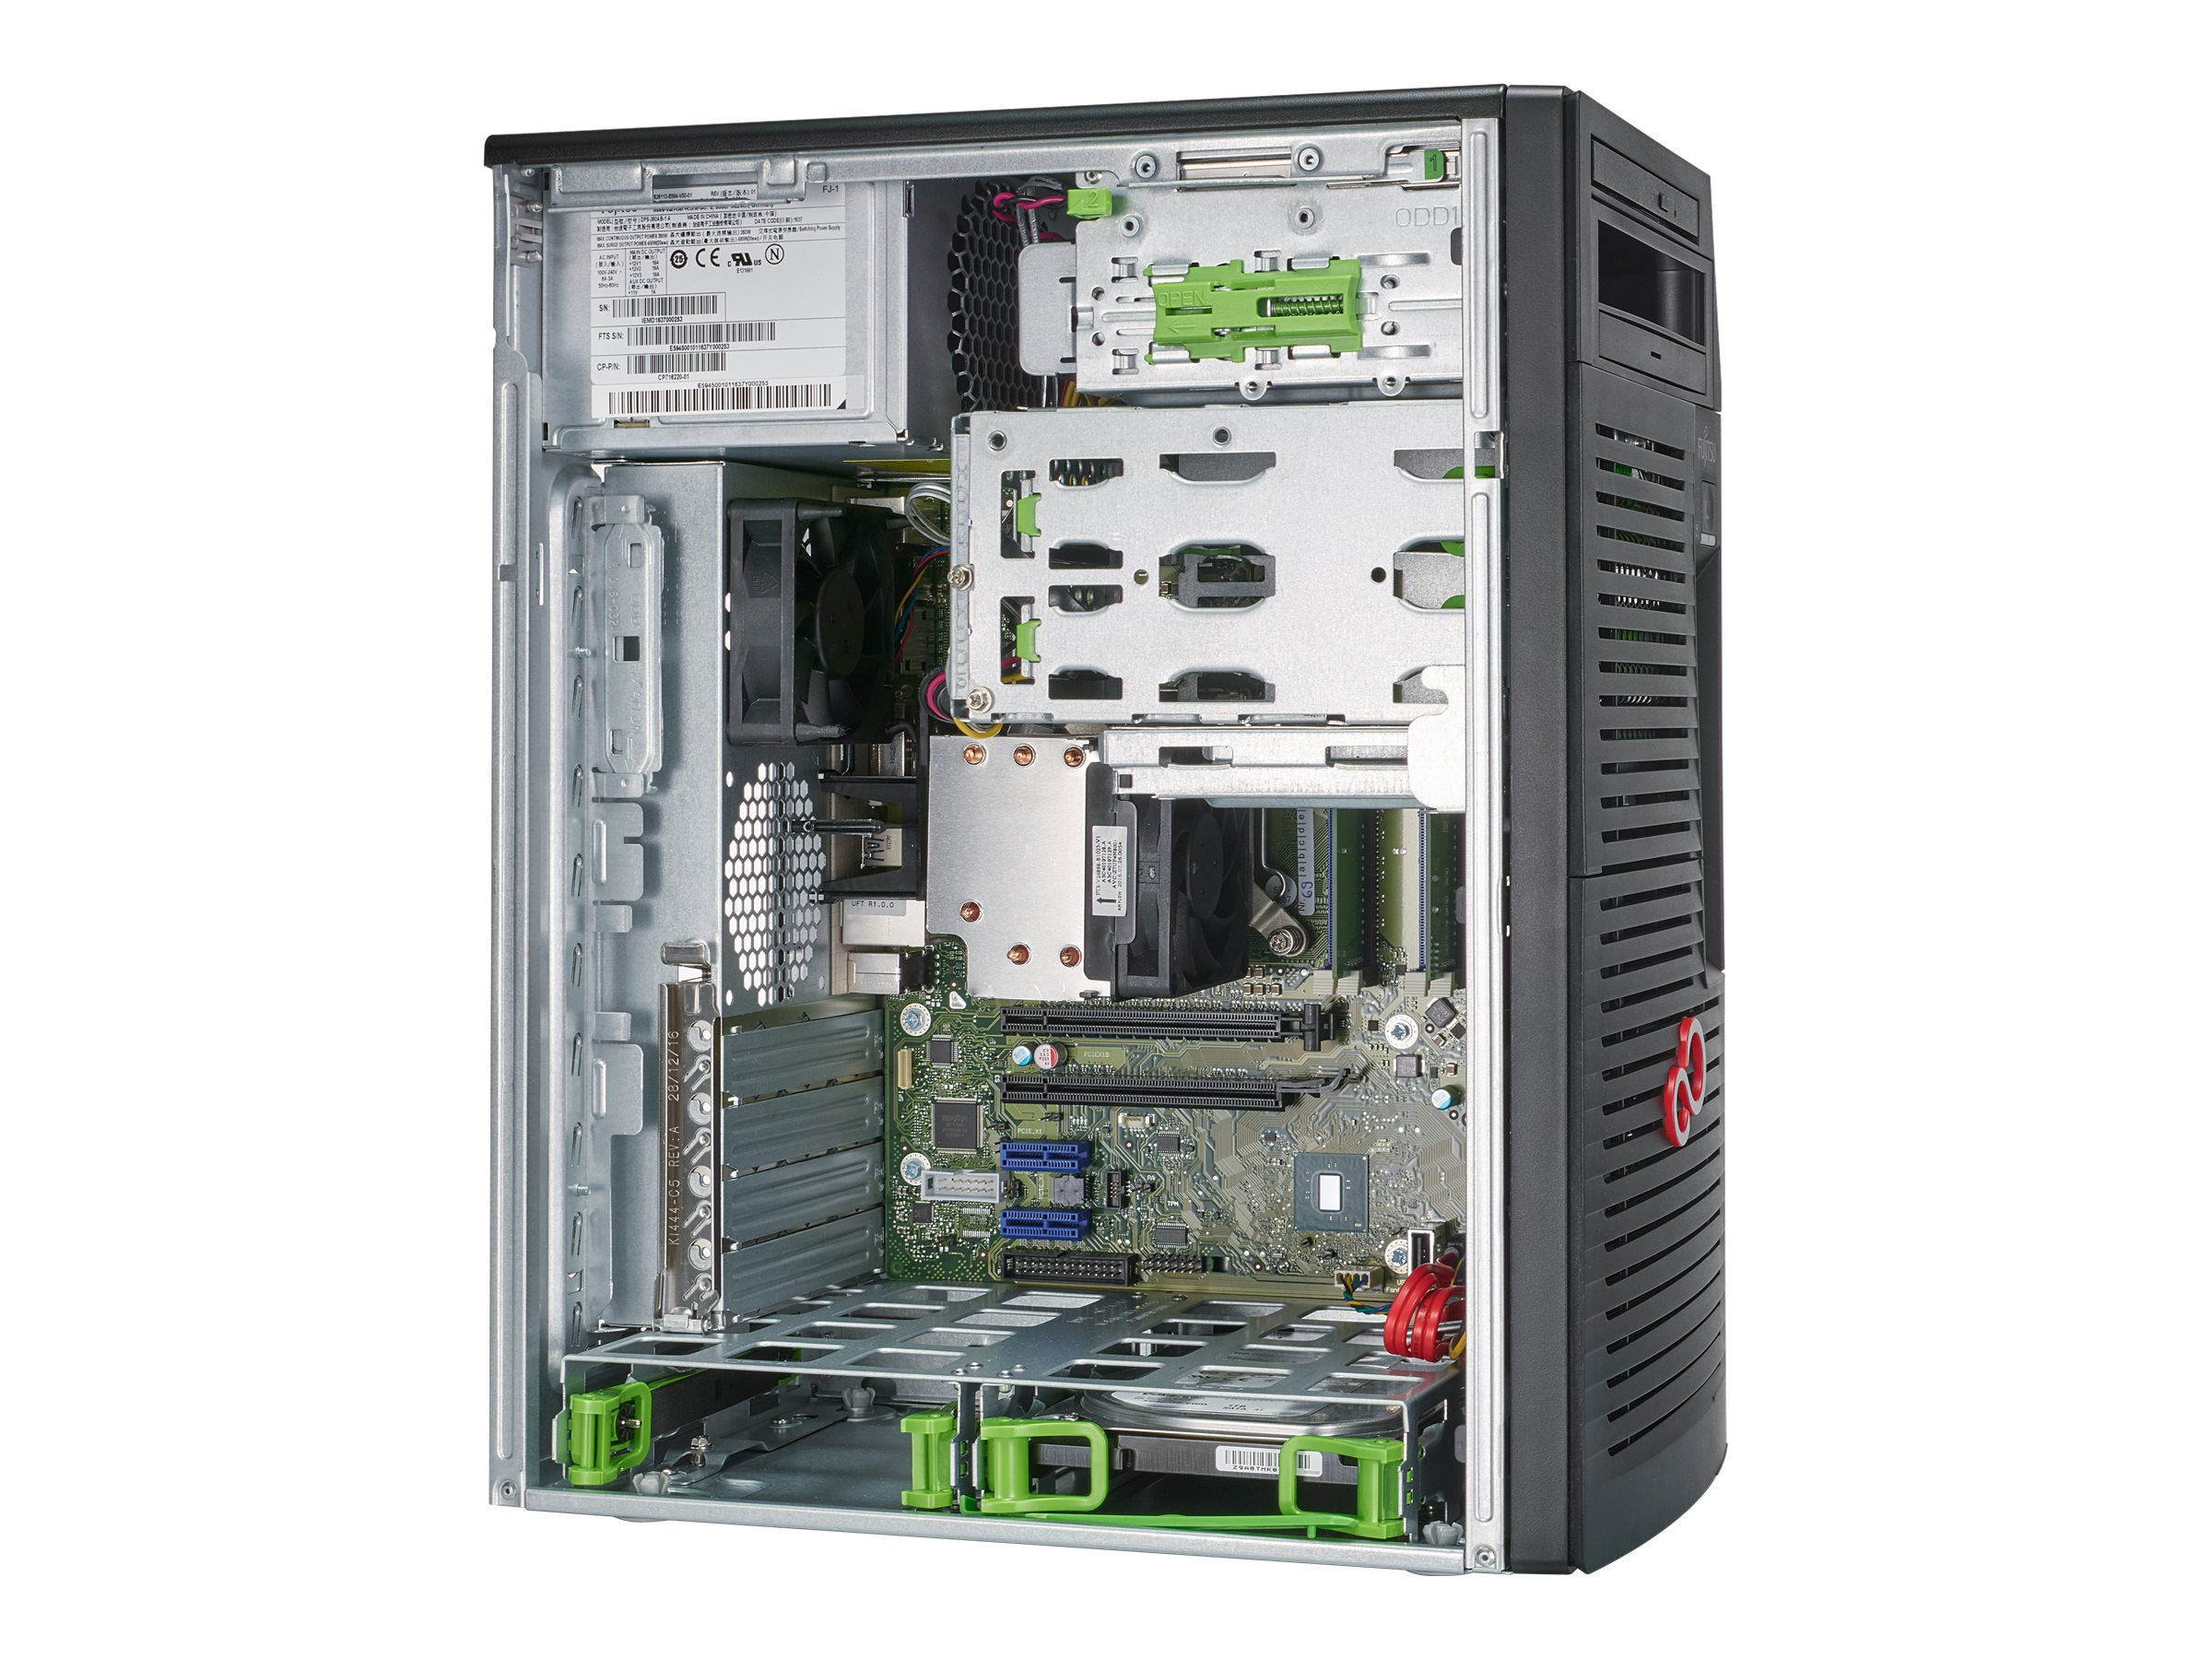 Vorschau: Fujitsu Celsius W580power - Micro Tower - 1 x Core i7 9700K / 3.6 GHz